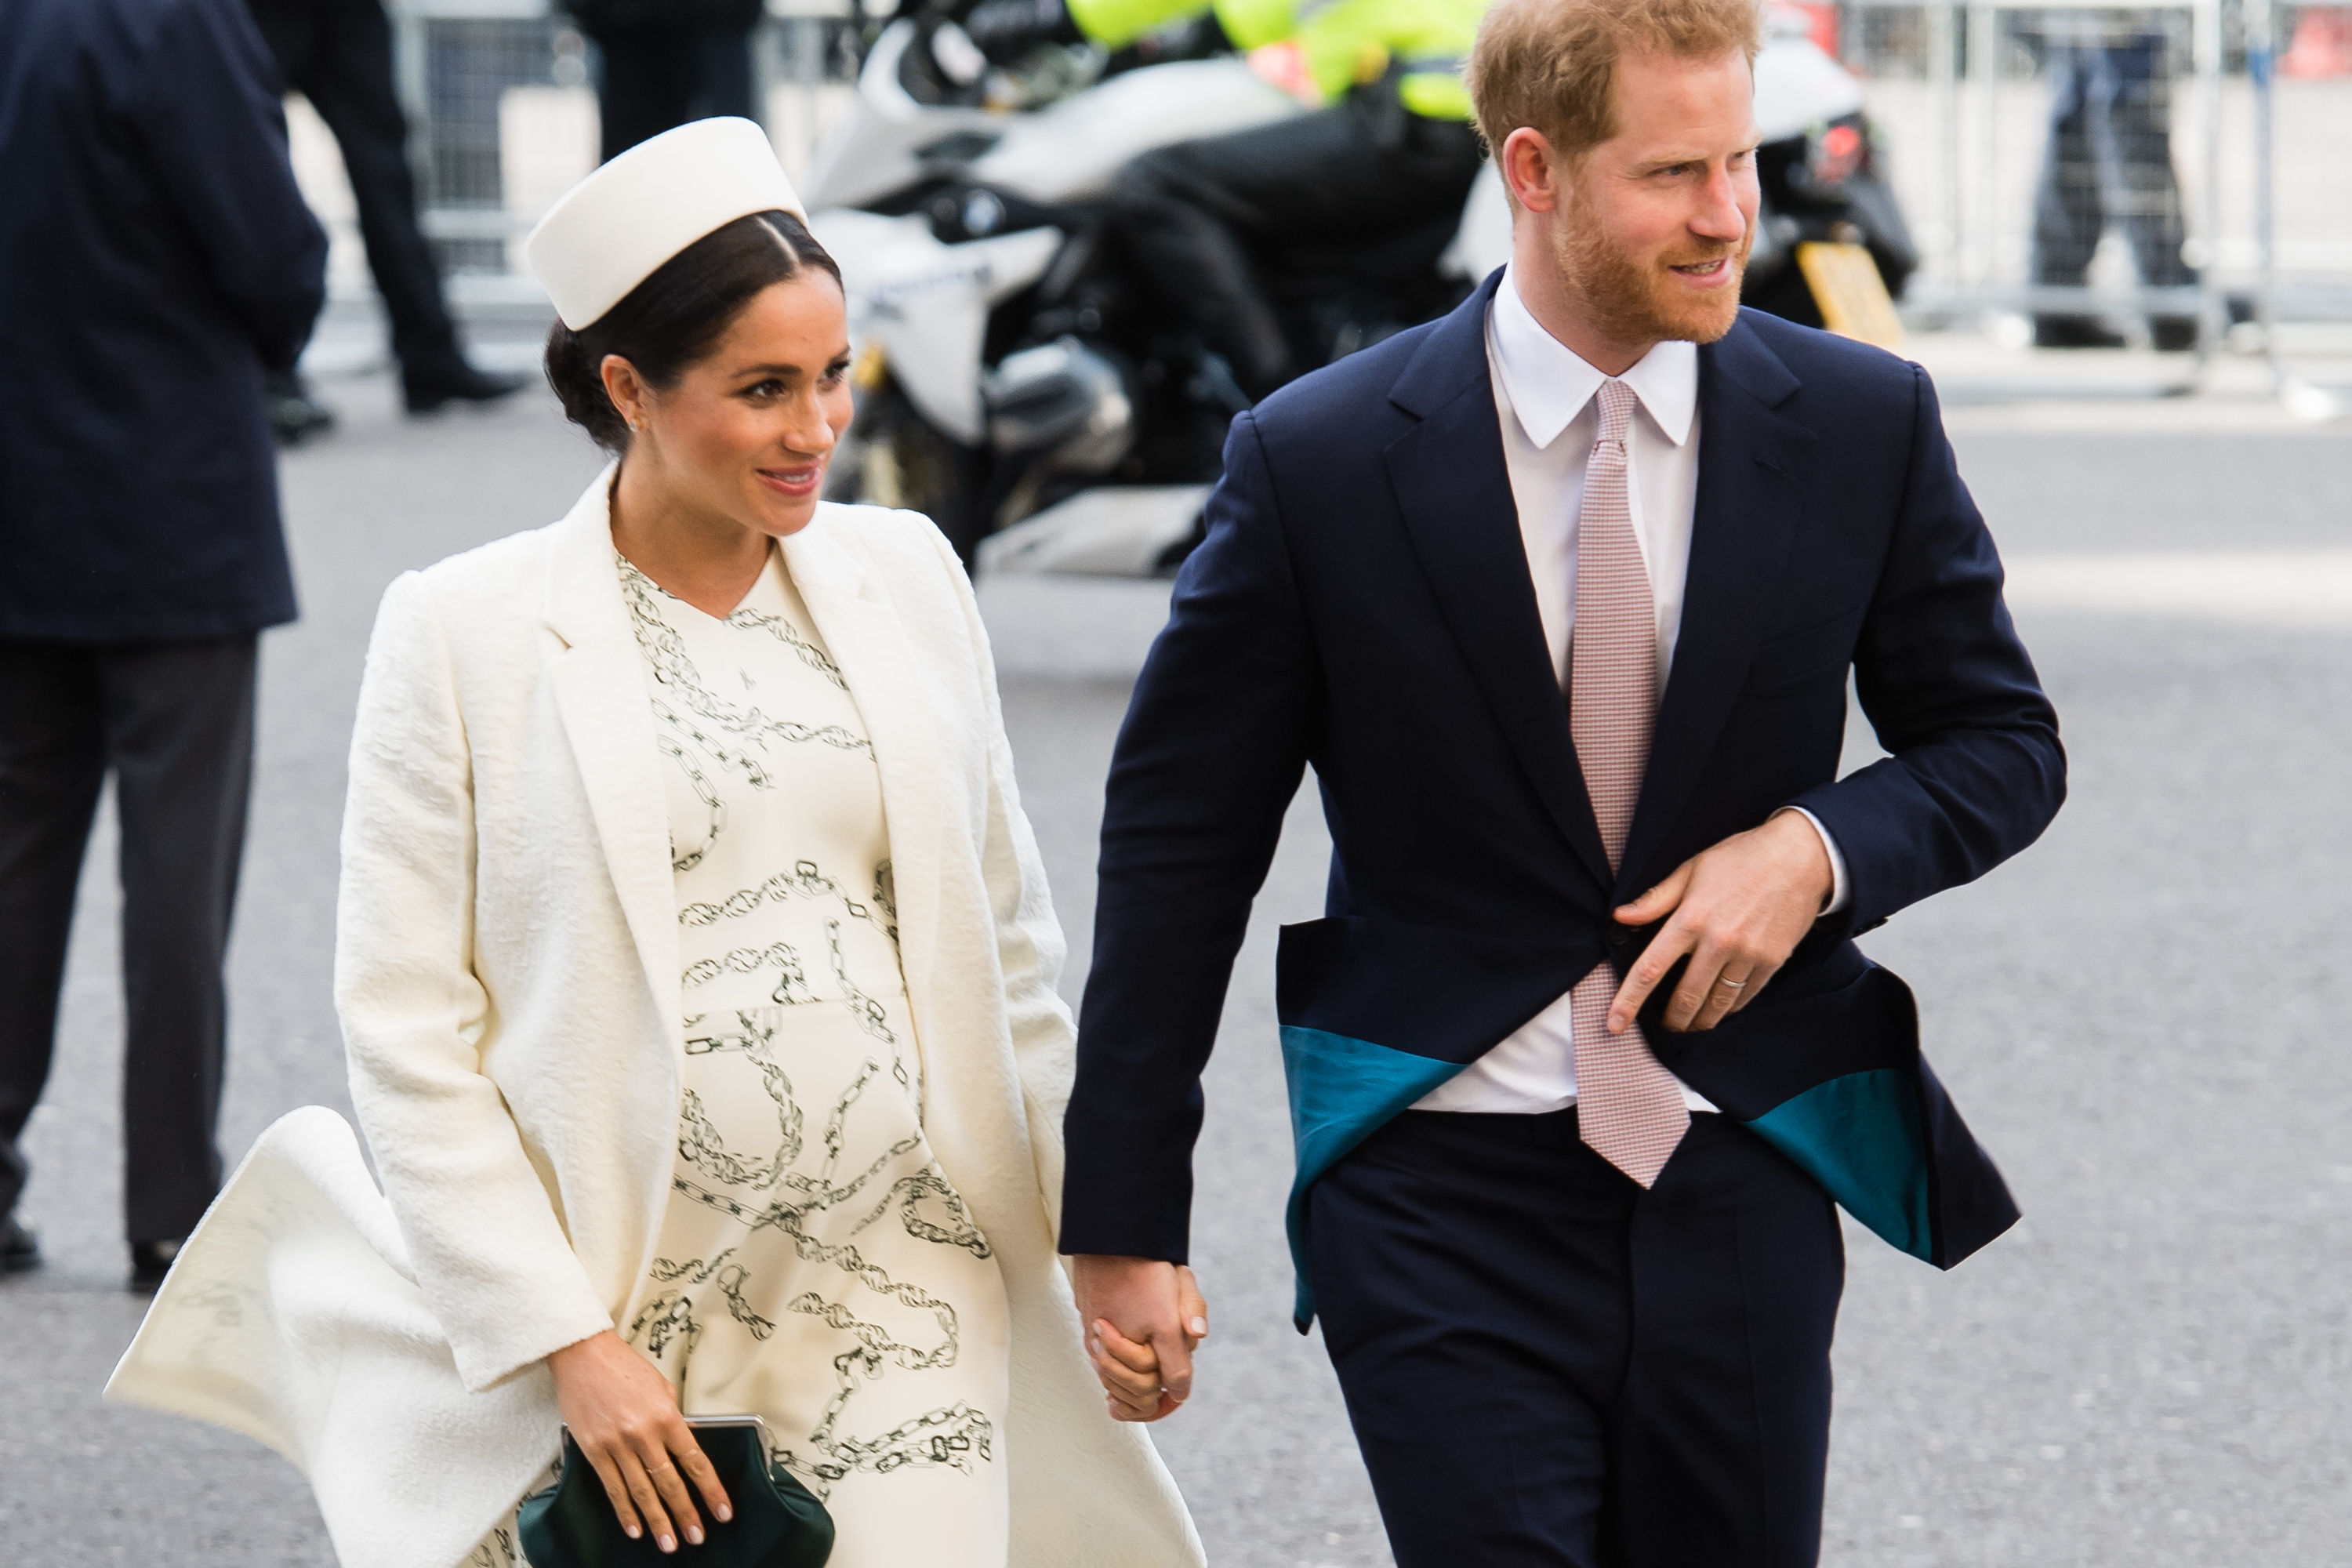 Benjamin Moore Thinks the Royal Baby Nursery Will Be This Dreamy Color Scheme